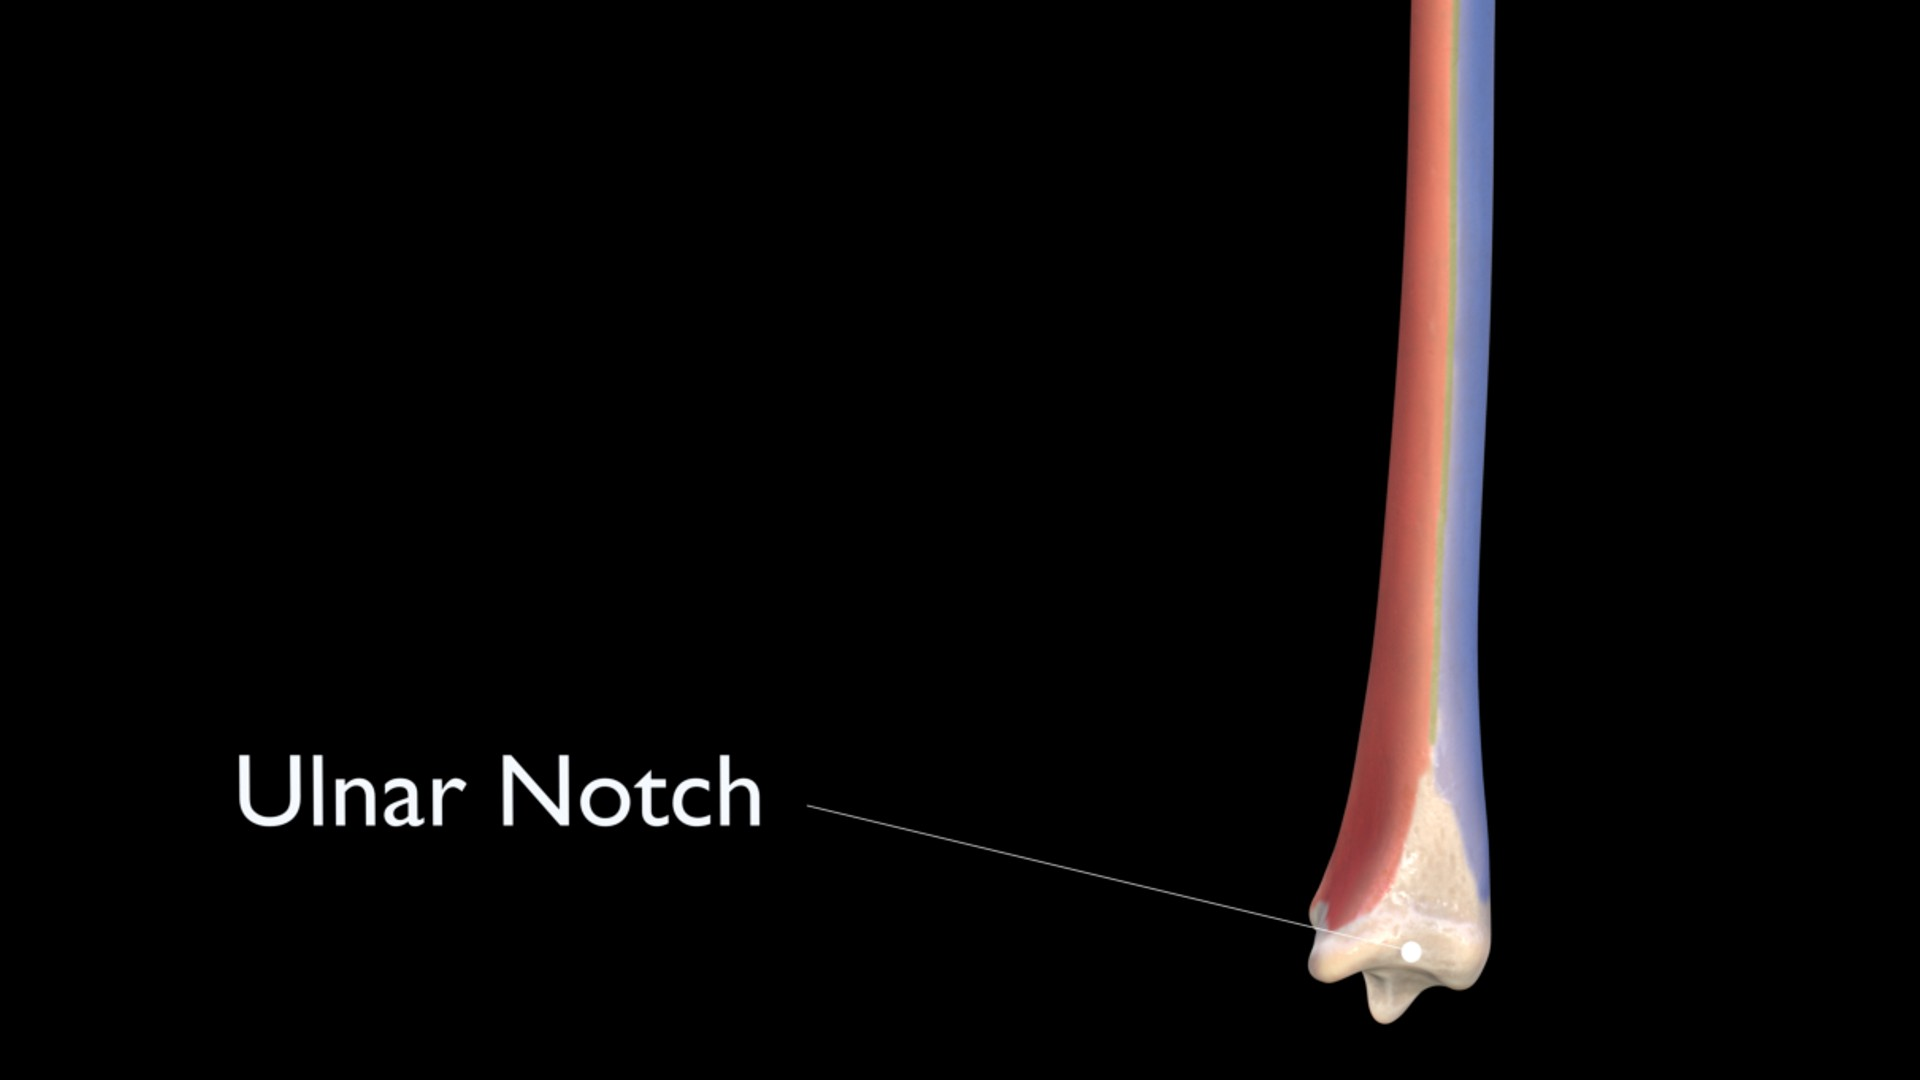 Ulnar Notch